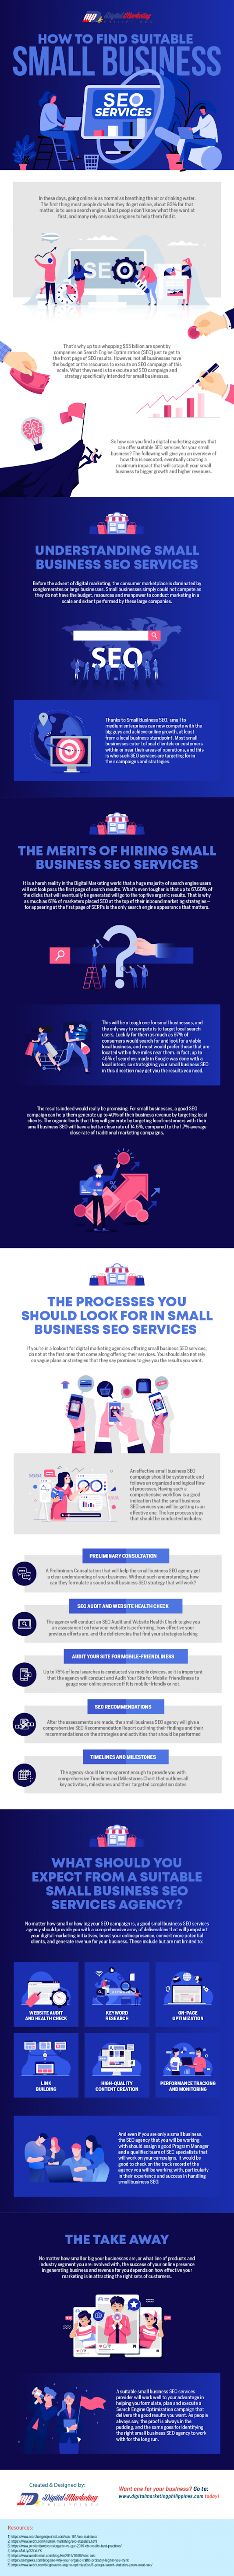 How to Find Suitable Small Business SEO Services #infographic #Small Business #SEO #SEO Services